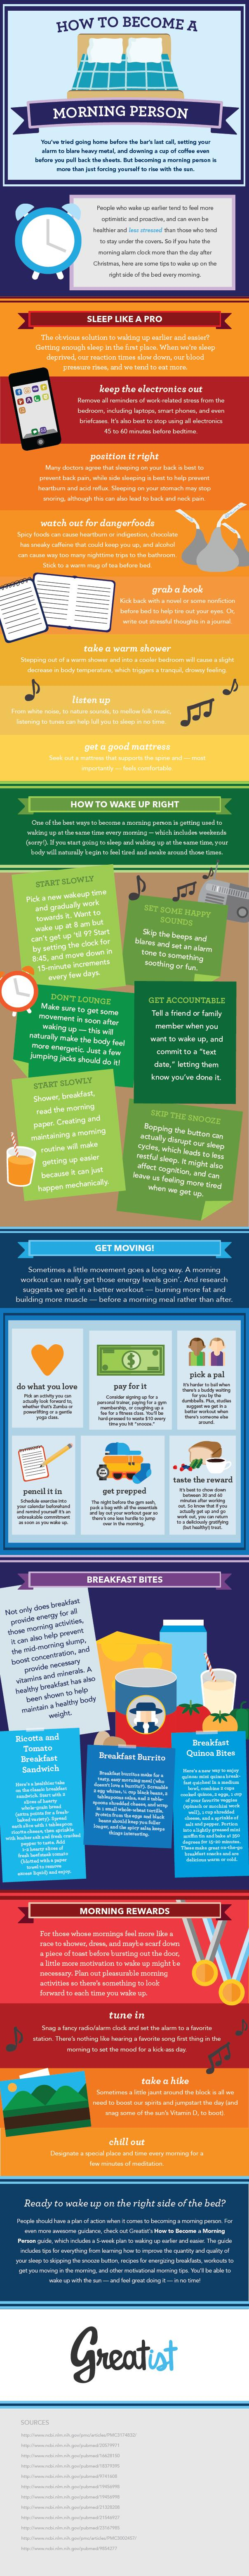 Morning Person Infographic greetist